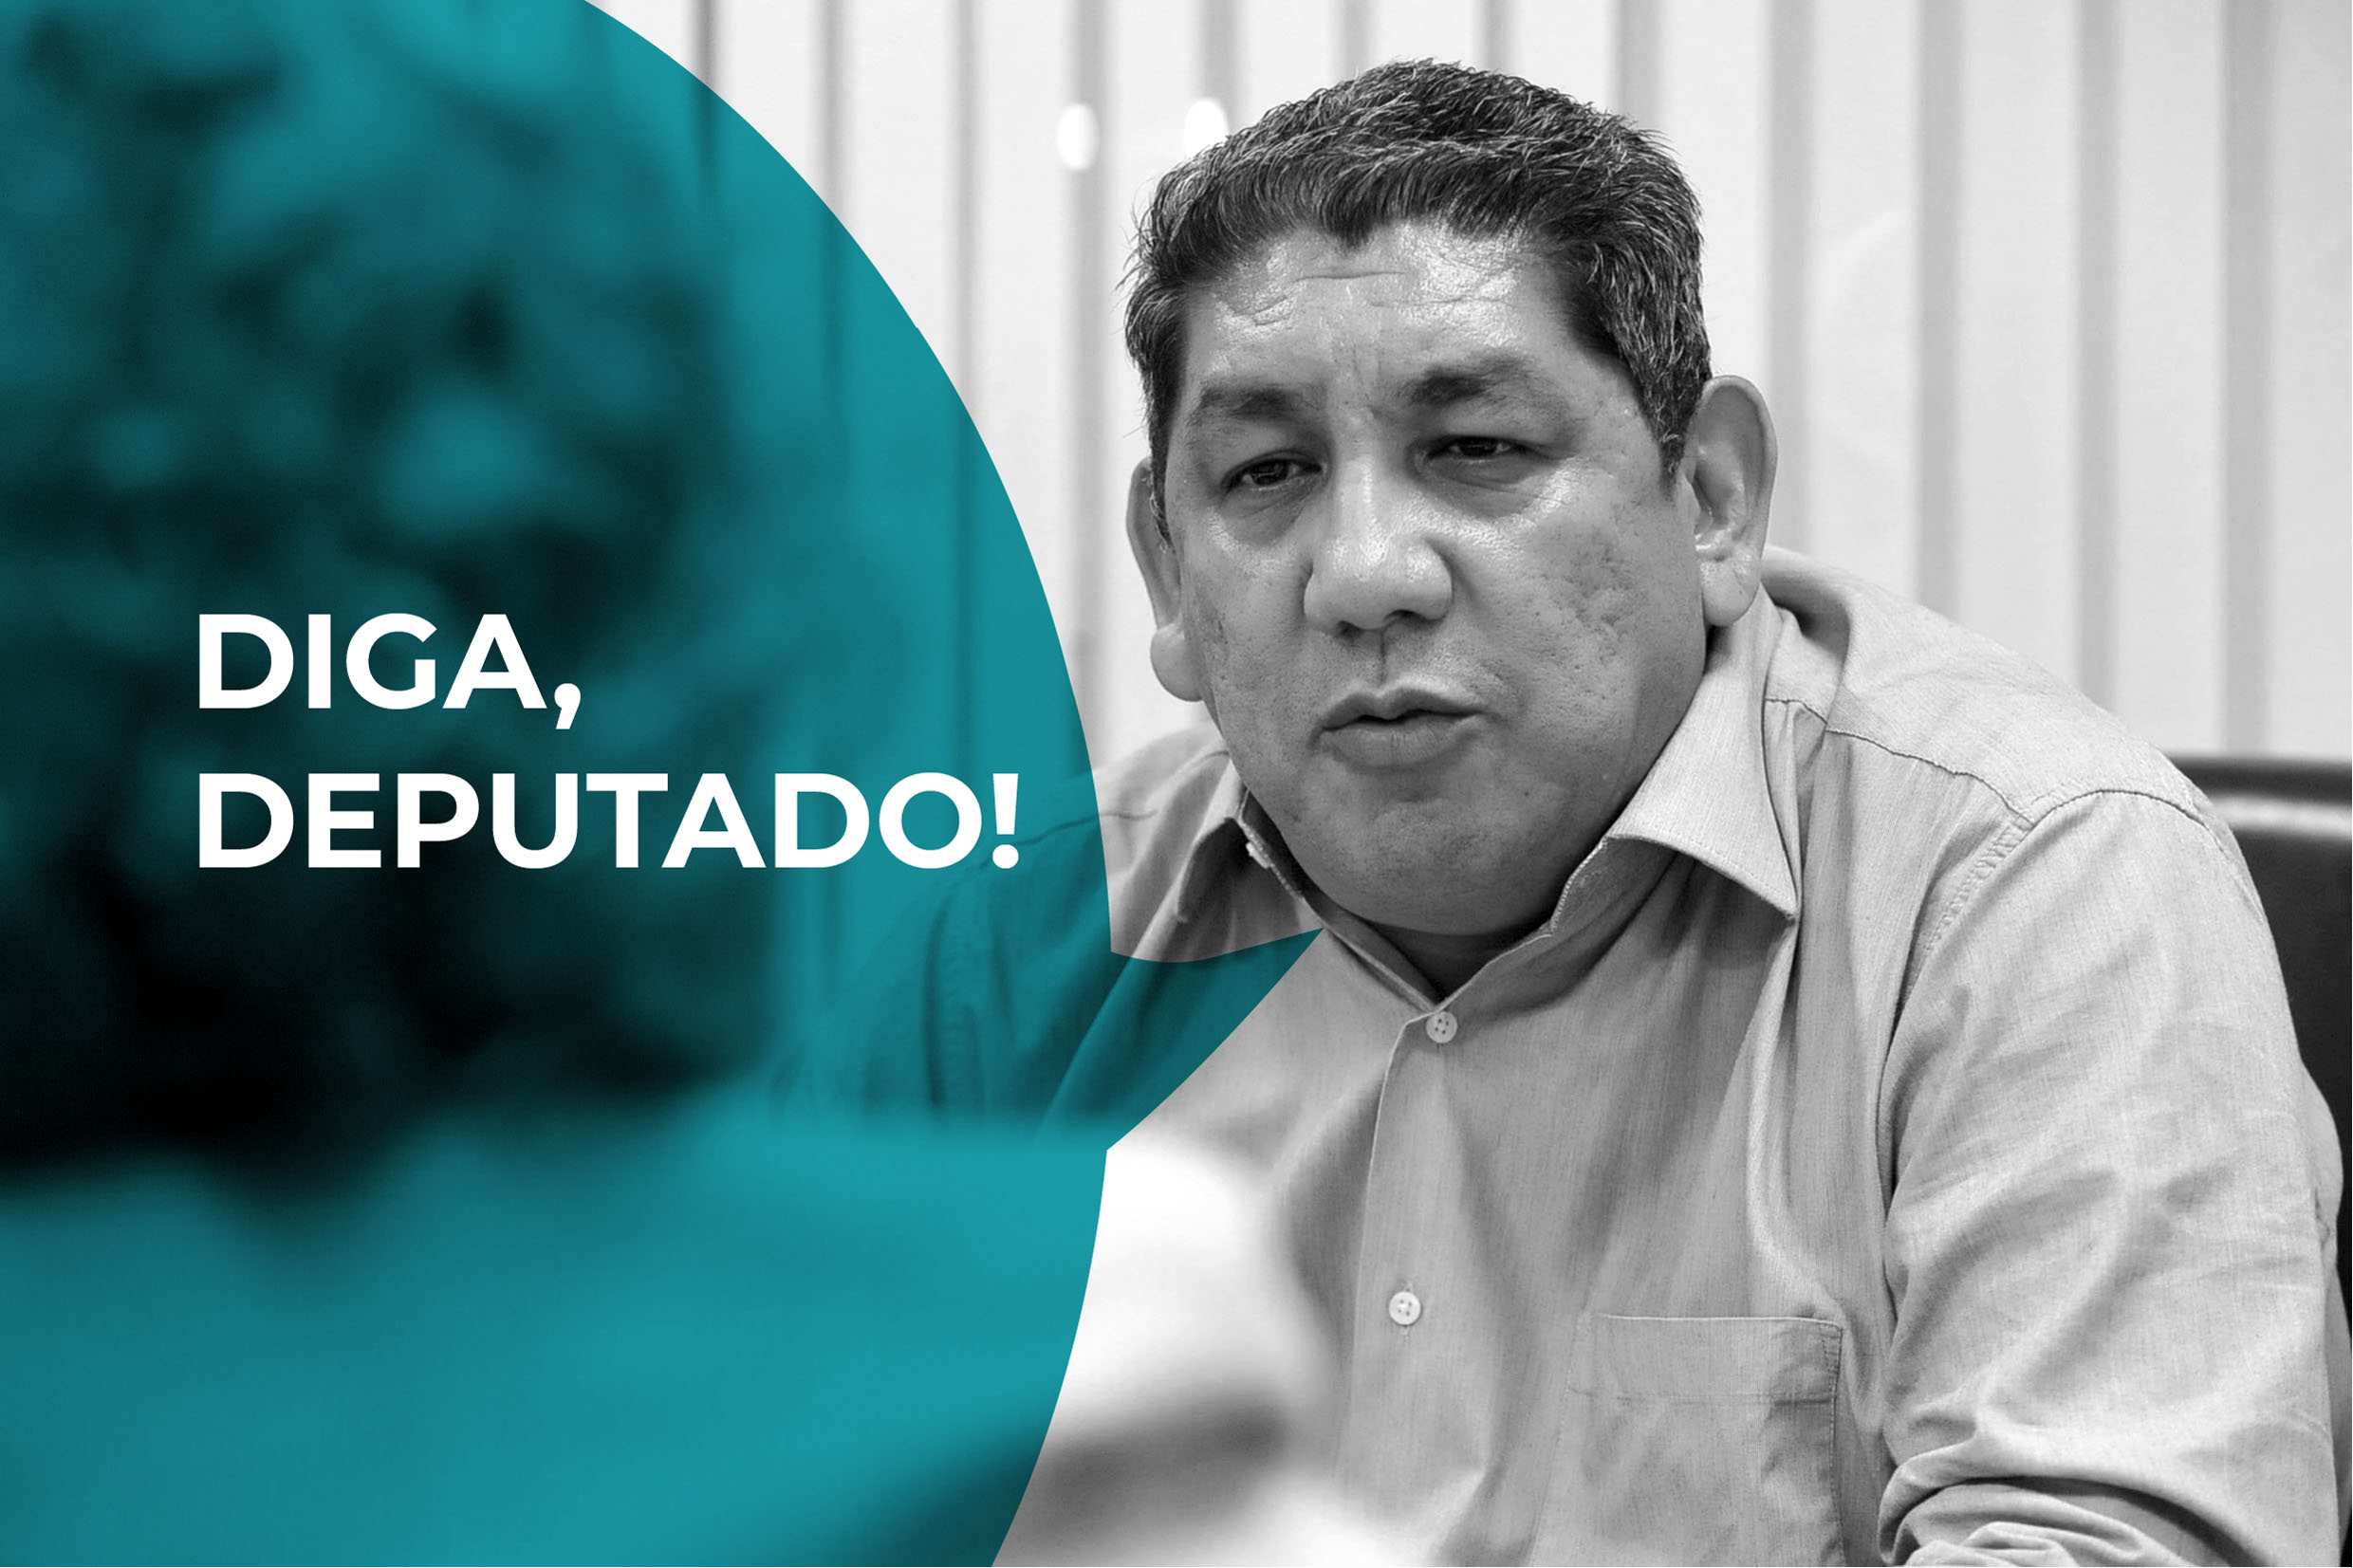 Adalberto Freitas<a style='float:right' href='https://www3.al.sp.gov.br/repositorio/noticia/N-08-2019/fg236812.jpg' target=_blank><img src='/_img/material-file-download-white.png' width='14px' alt='Clique para baixar a imagem'></a>